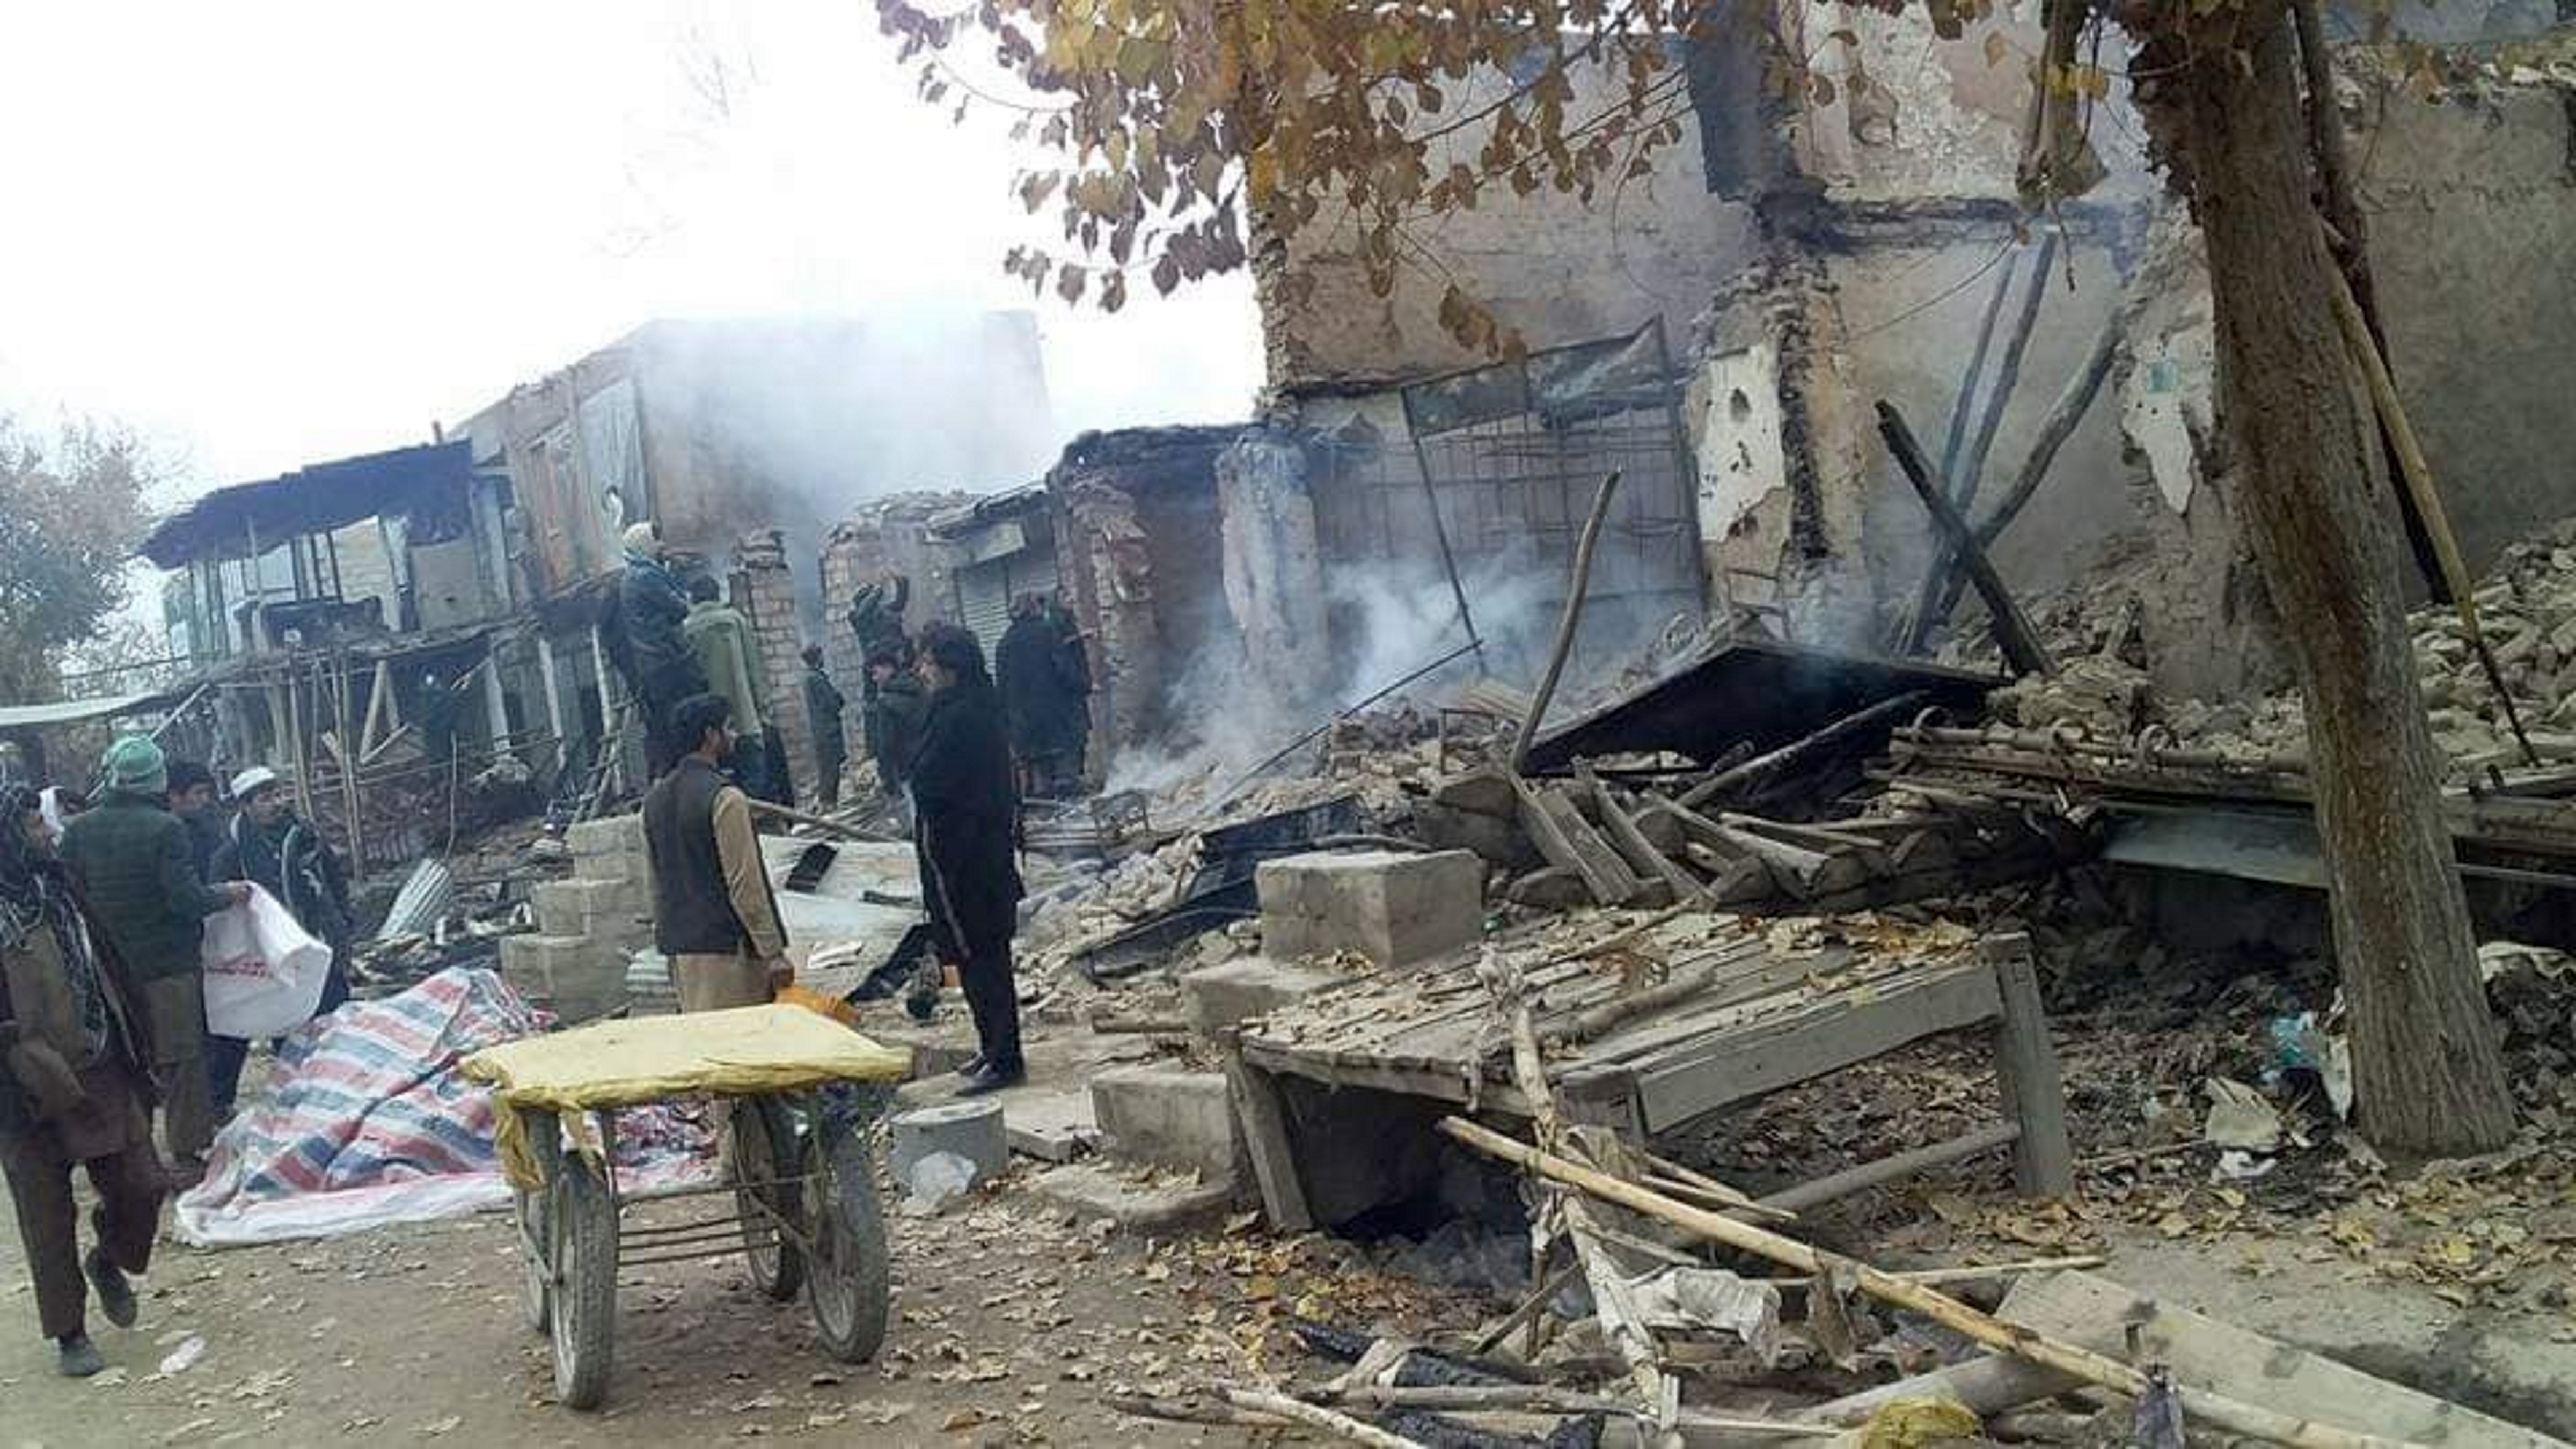 Taliban's destruction of bazaar in Baghlan leads to massive financial loss